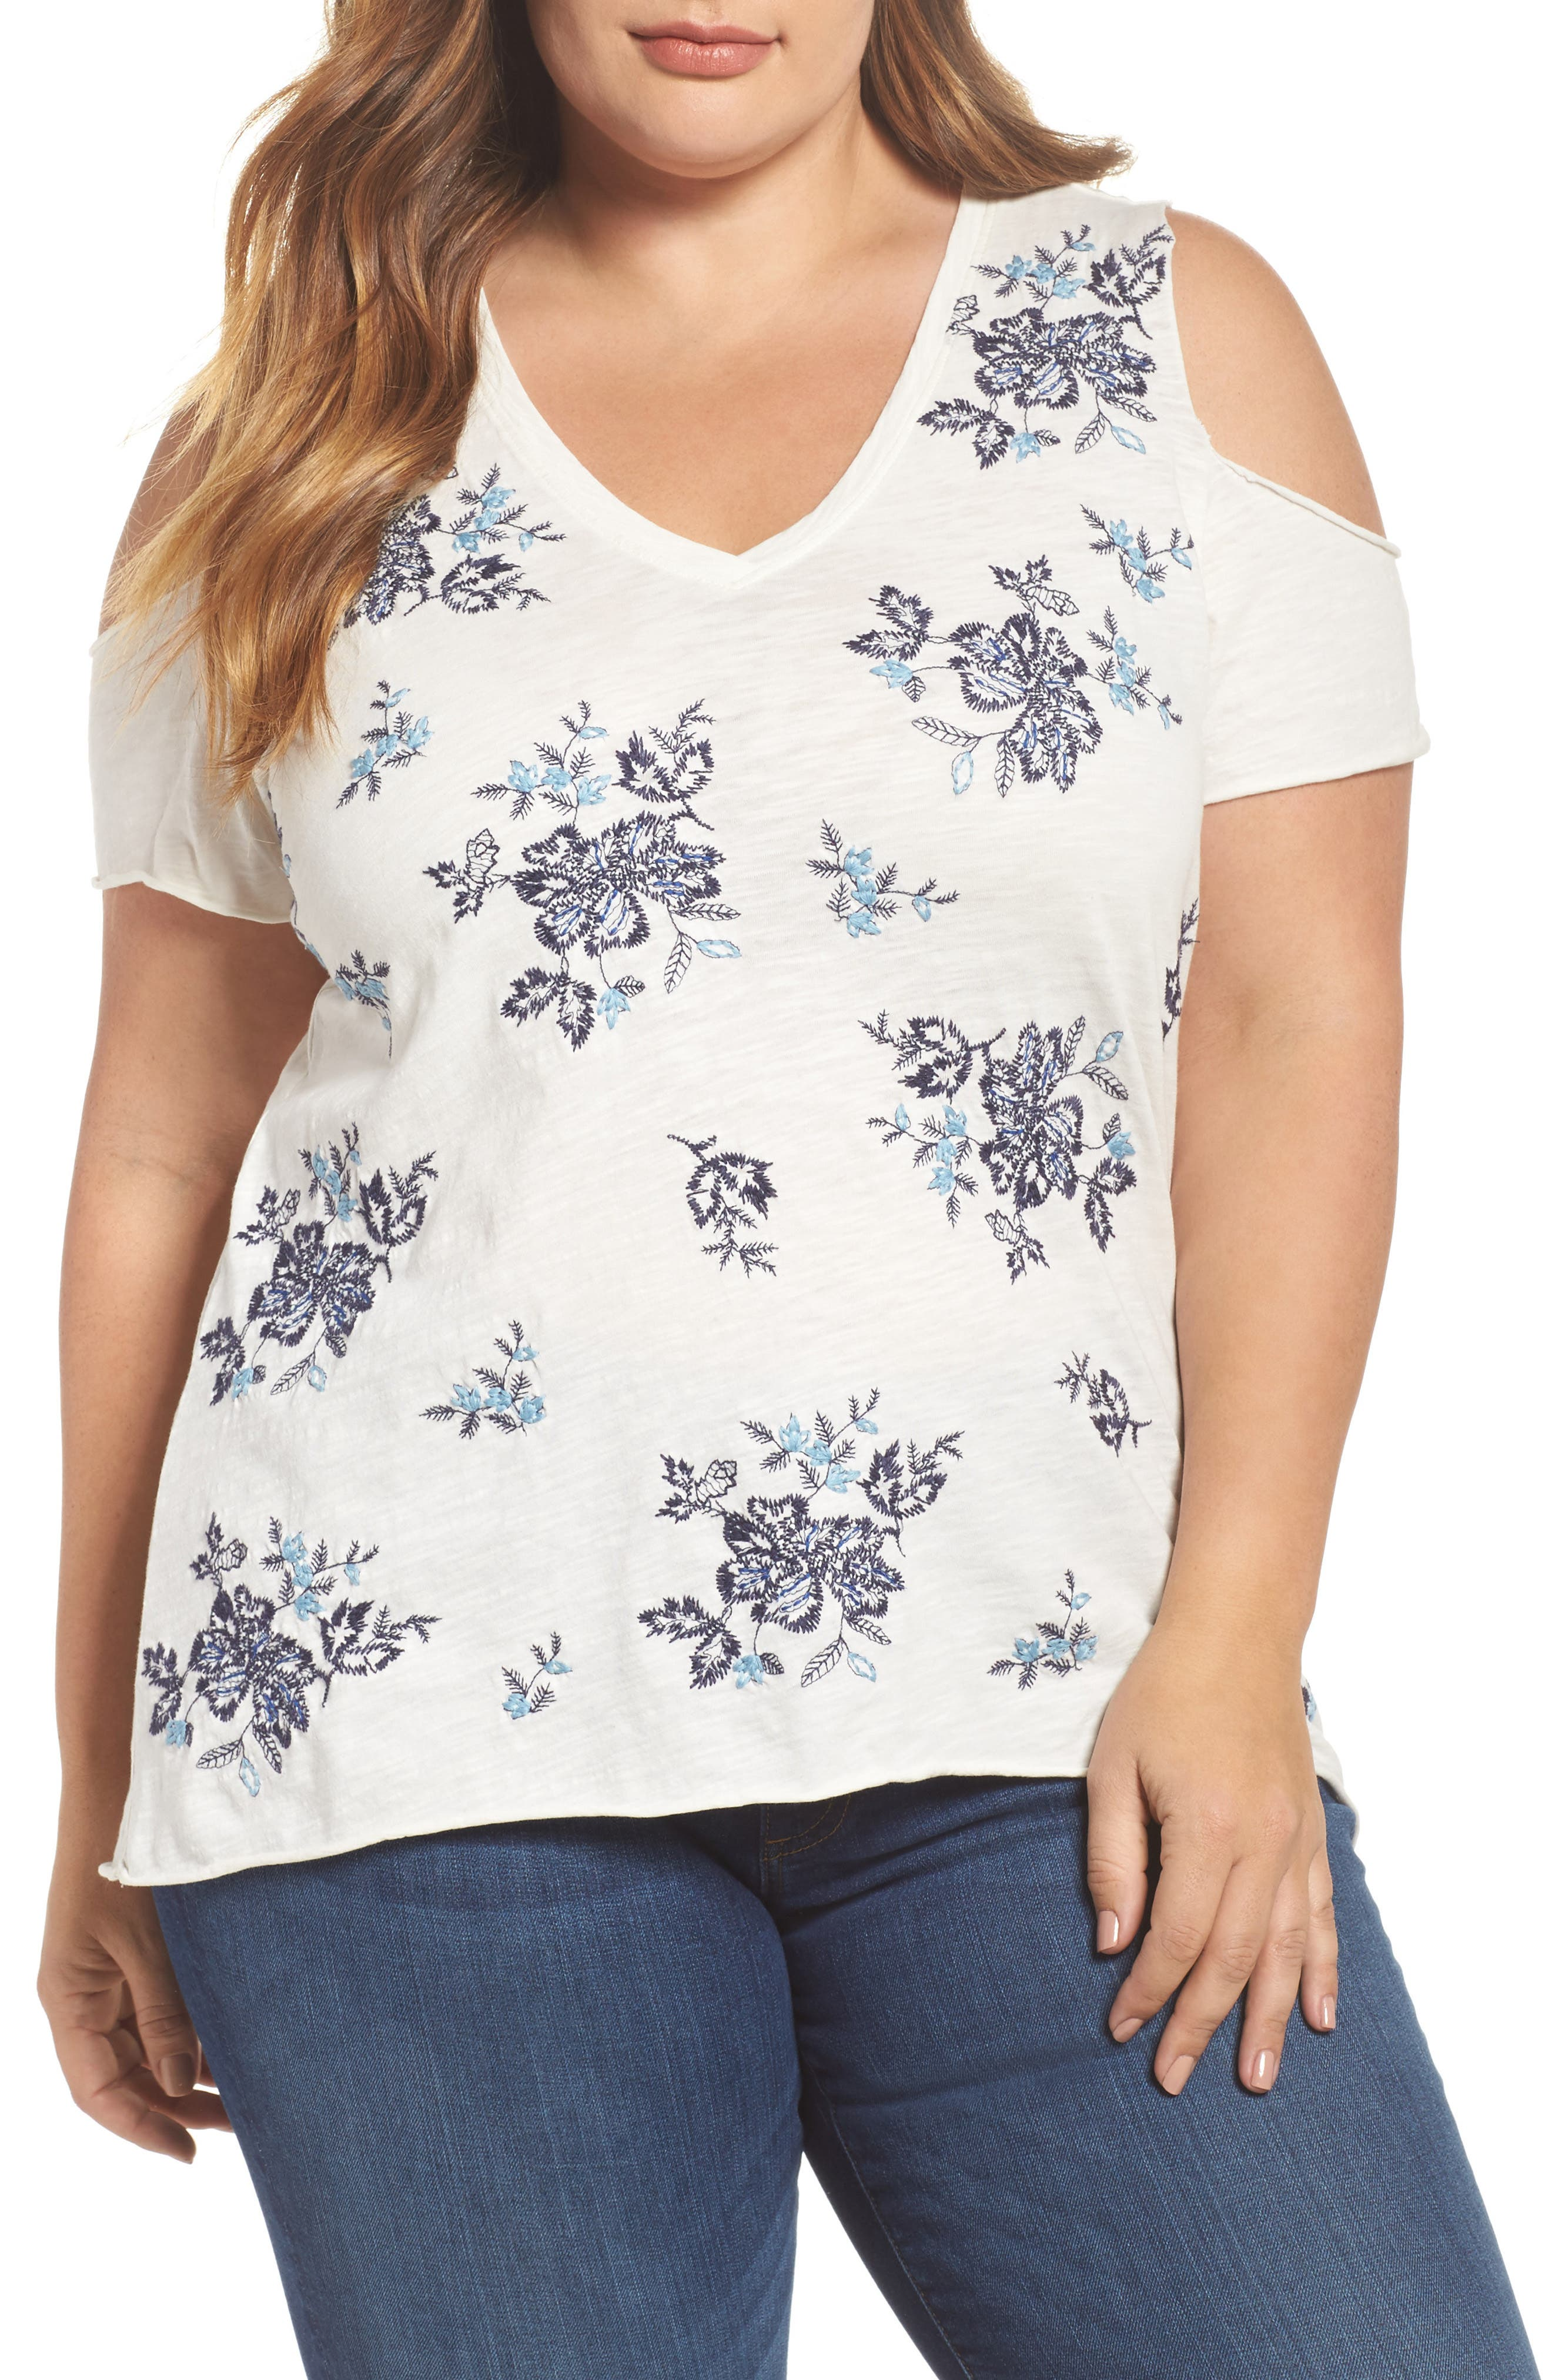 Main Image - Lucky Brand Embroidered Cold Shoulder Tee (Plus Size)